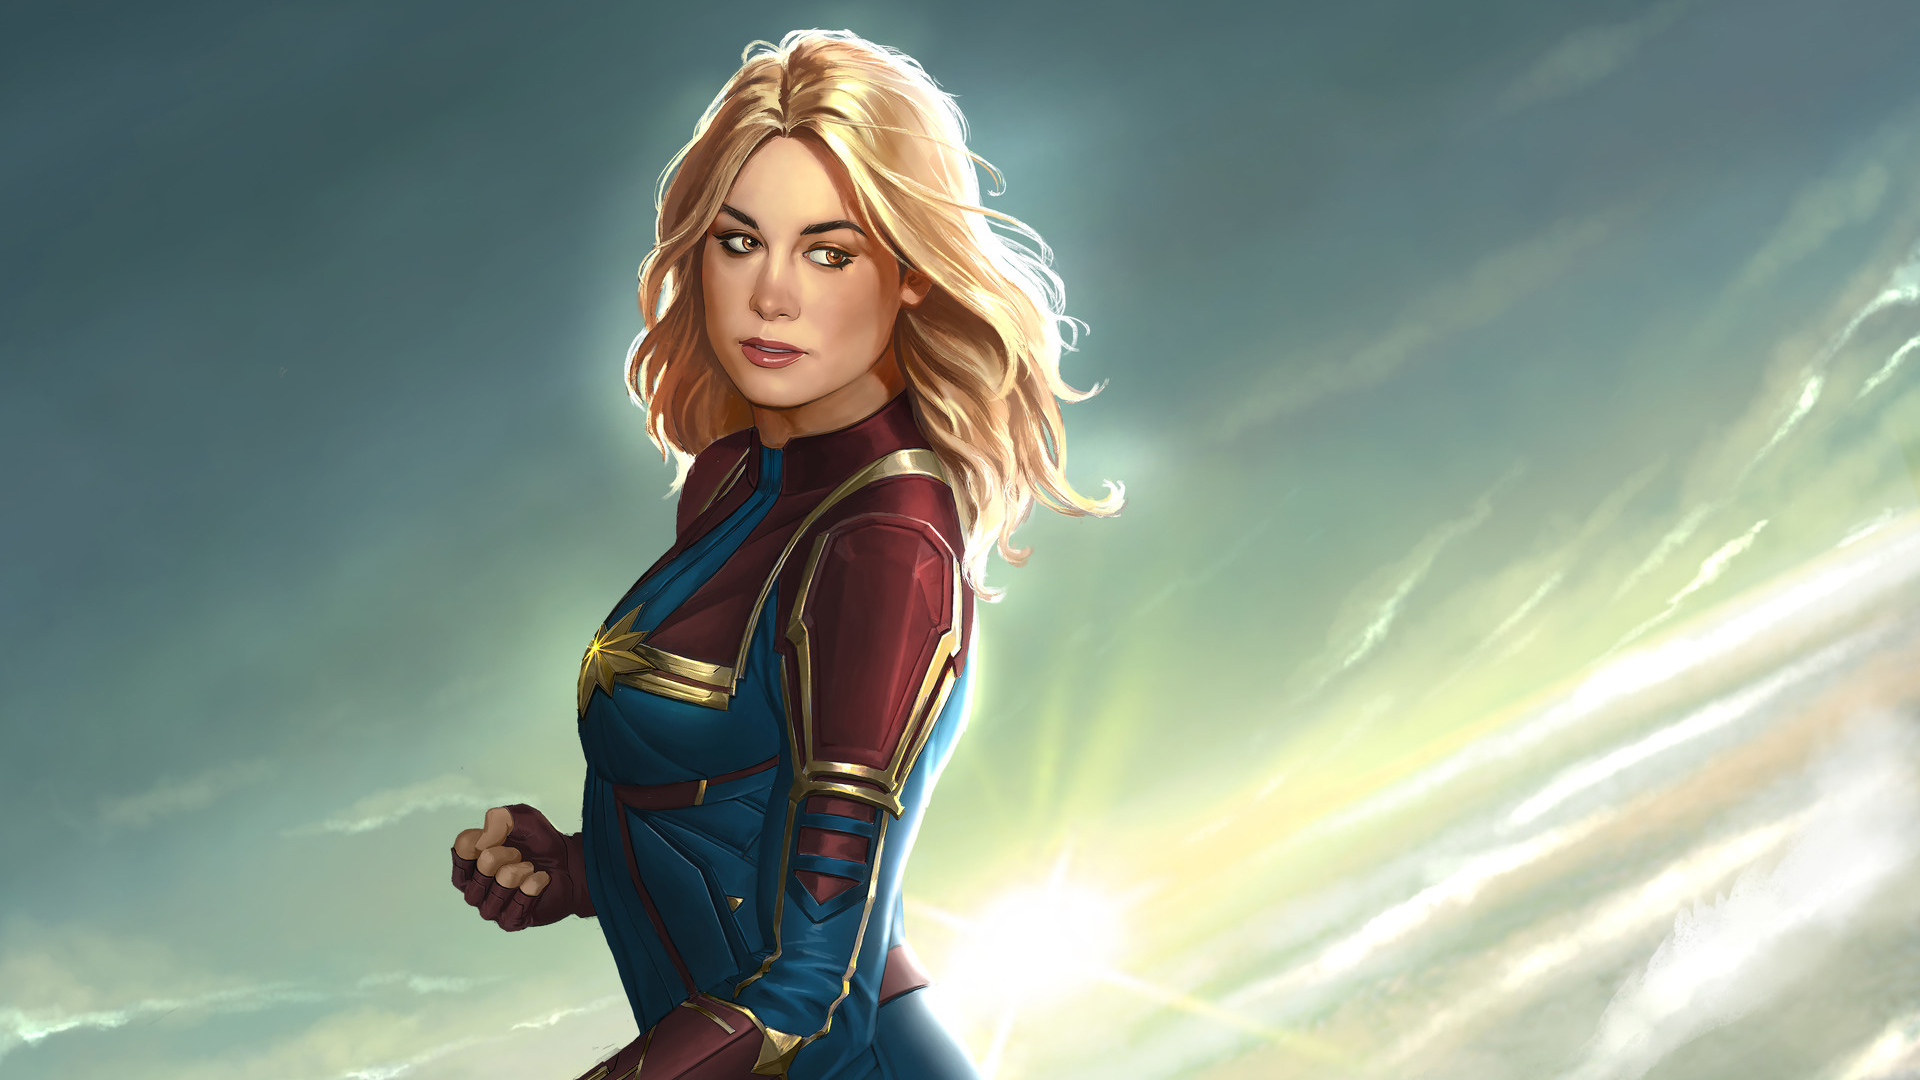 captain marvel hd wallpaper | background image | 1920x1080 | id